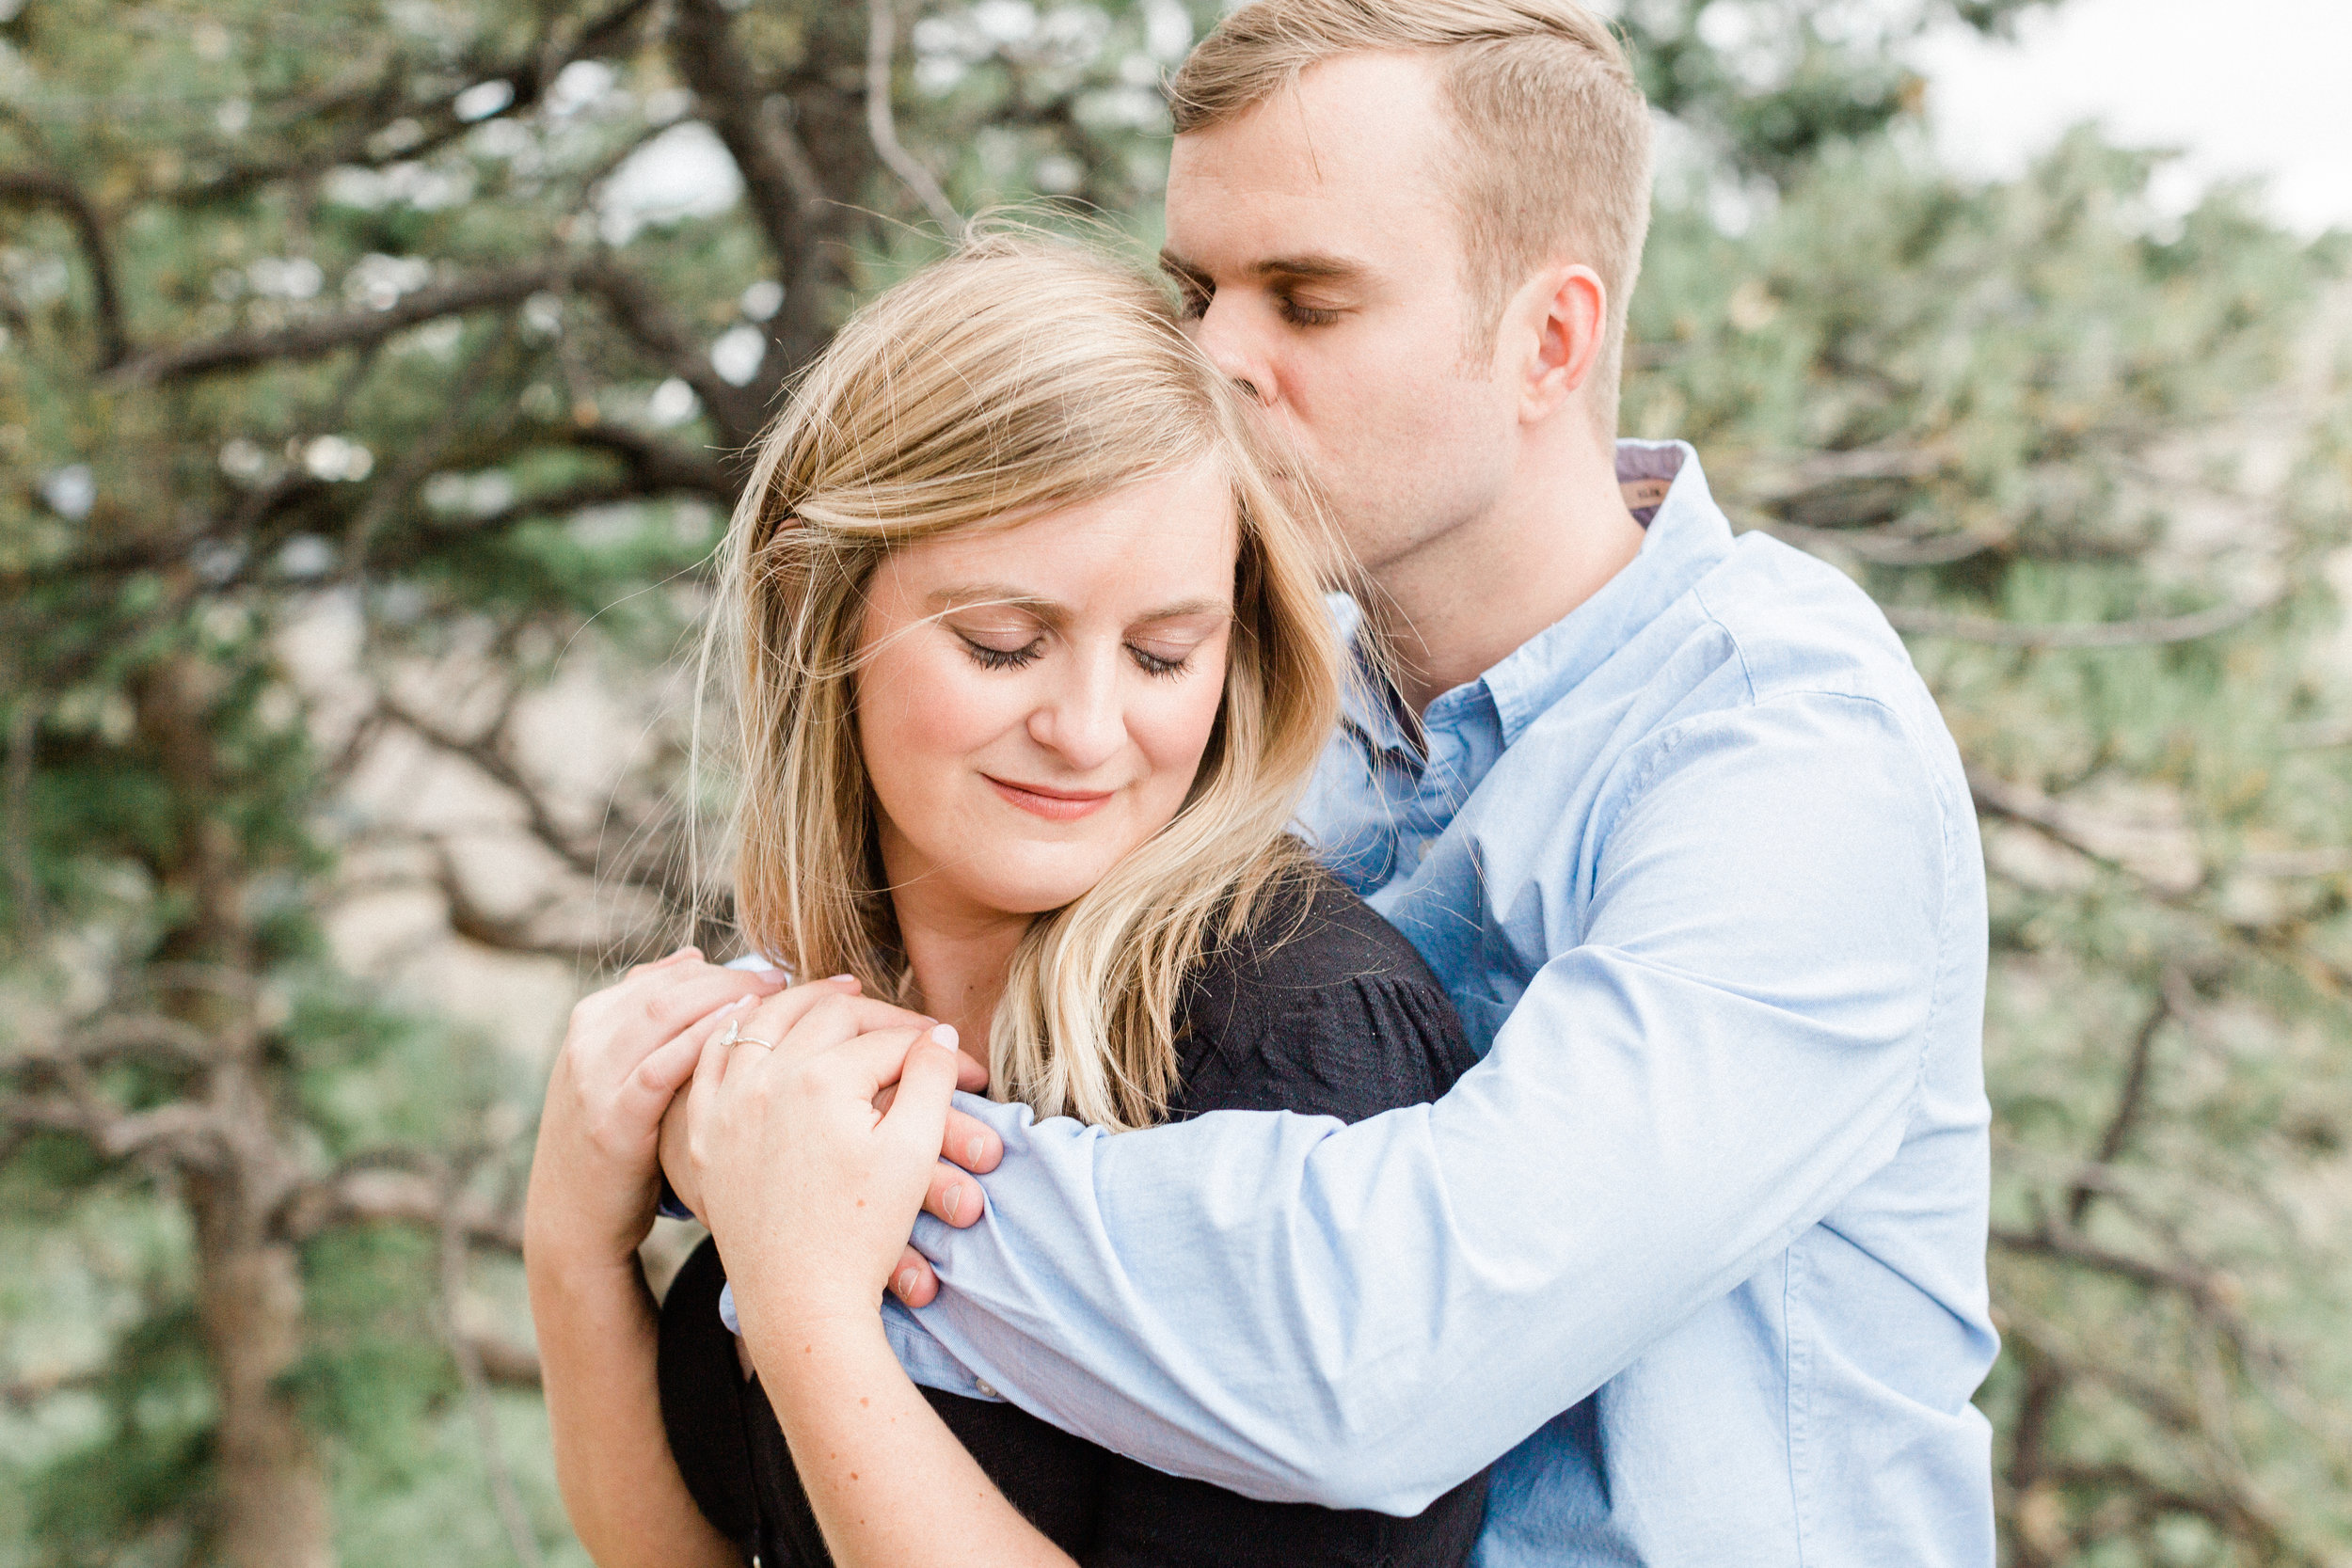 Dorothy_Louise_Photography_Lookout_Mountain_Colorado_Engagement_Gennie_Sean-40.jpg